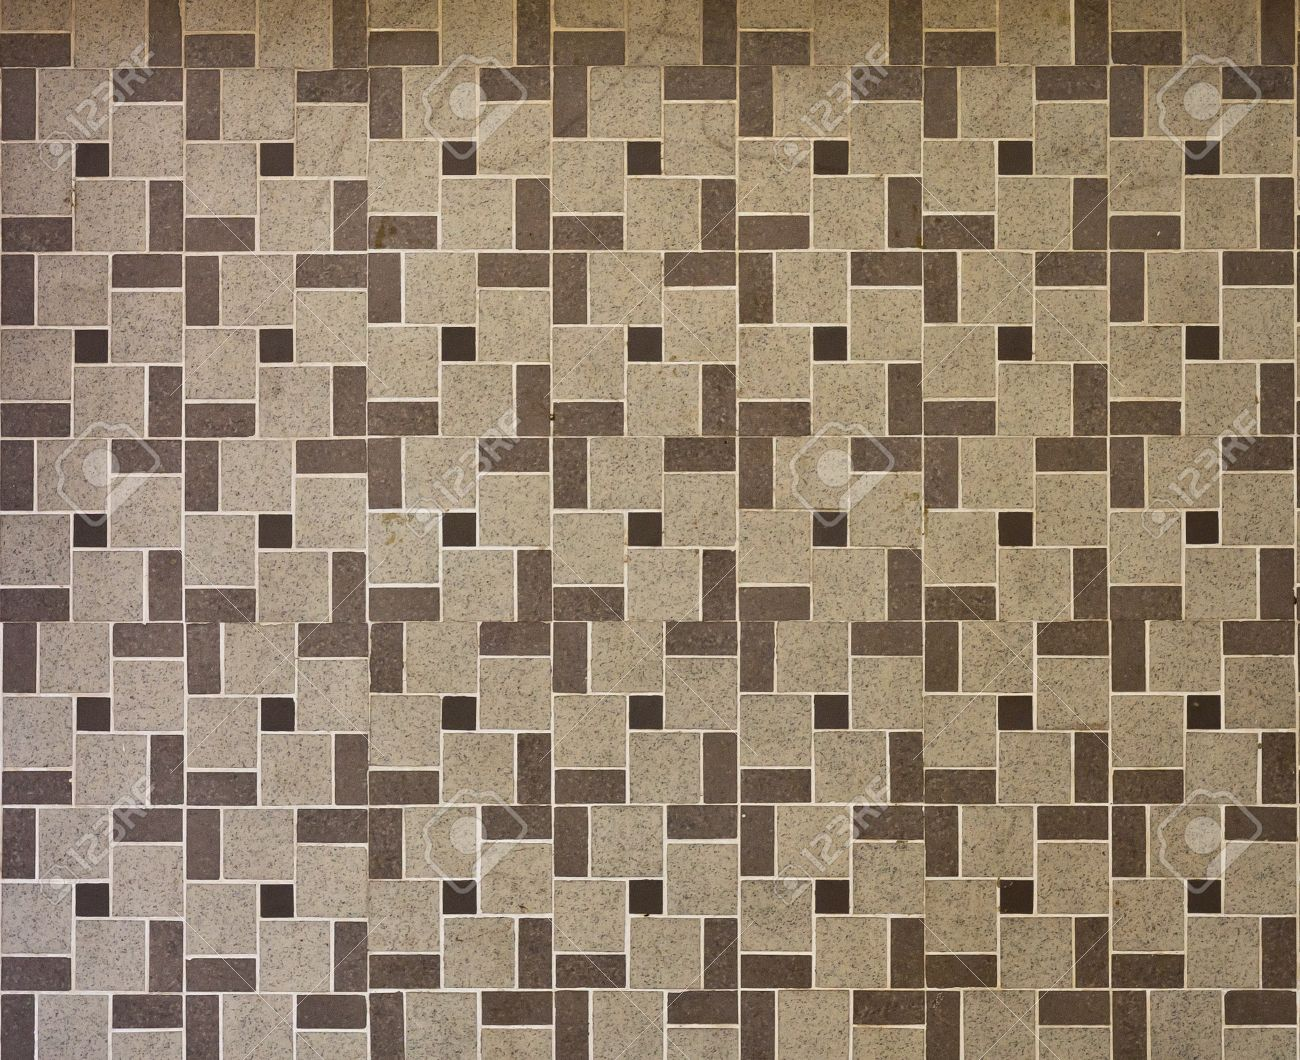 Beautiful brown tile texture pattern use for wall or floor - 9356804